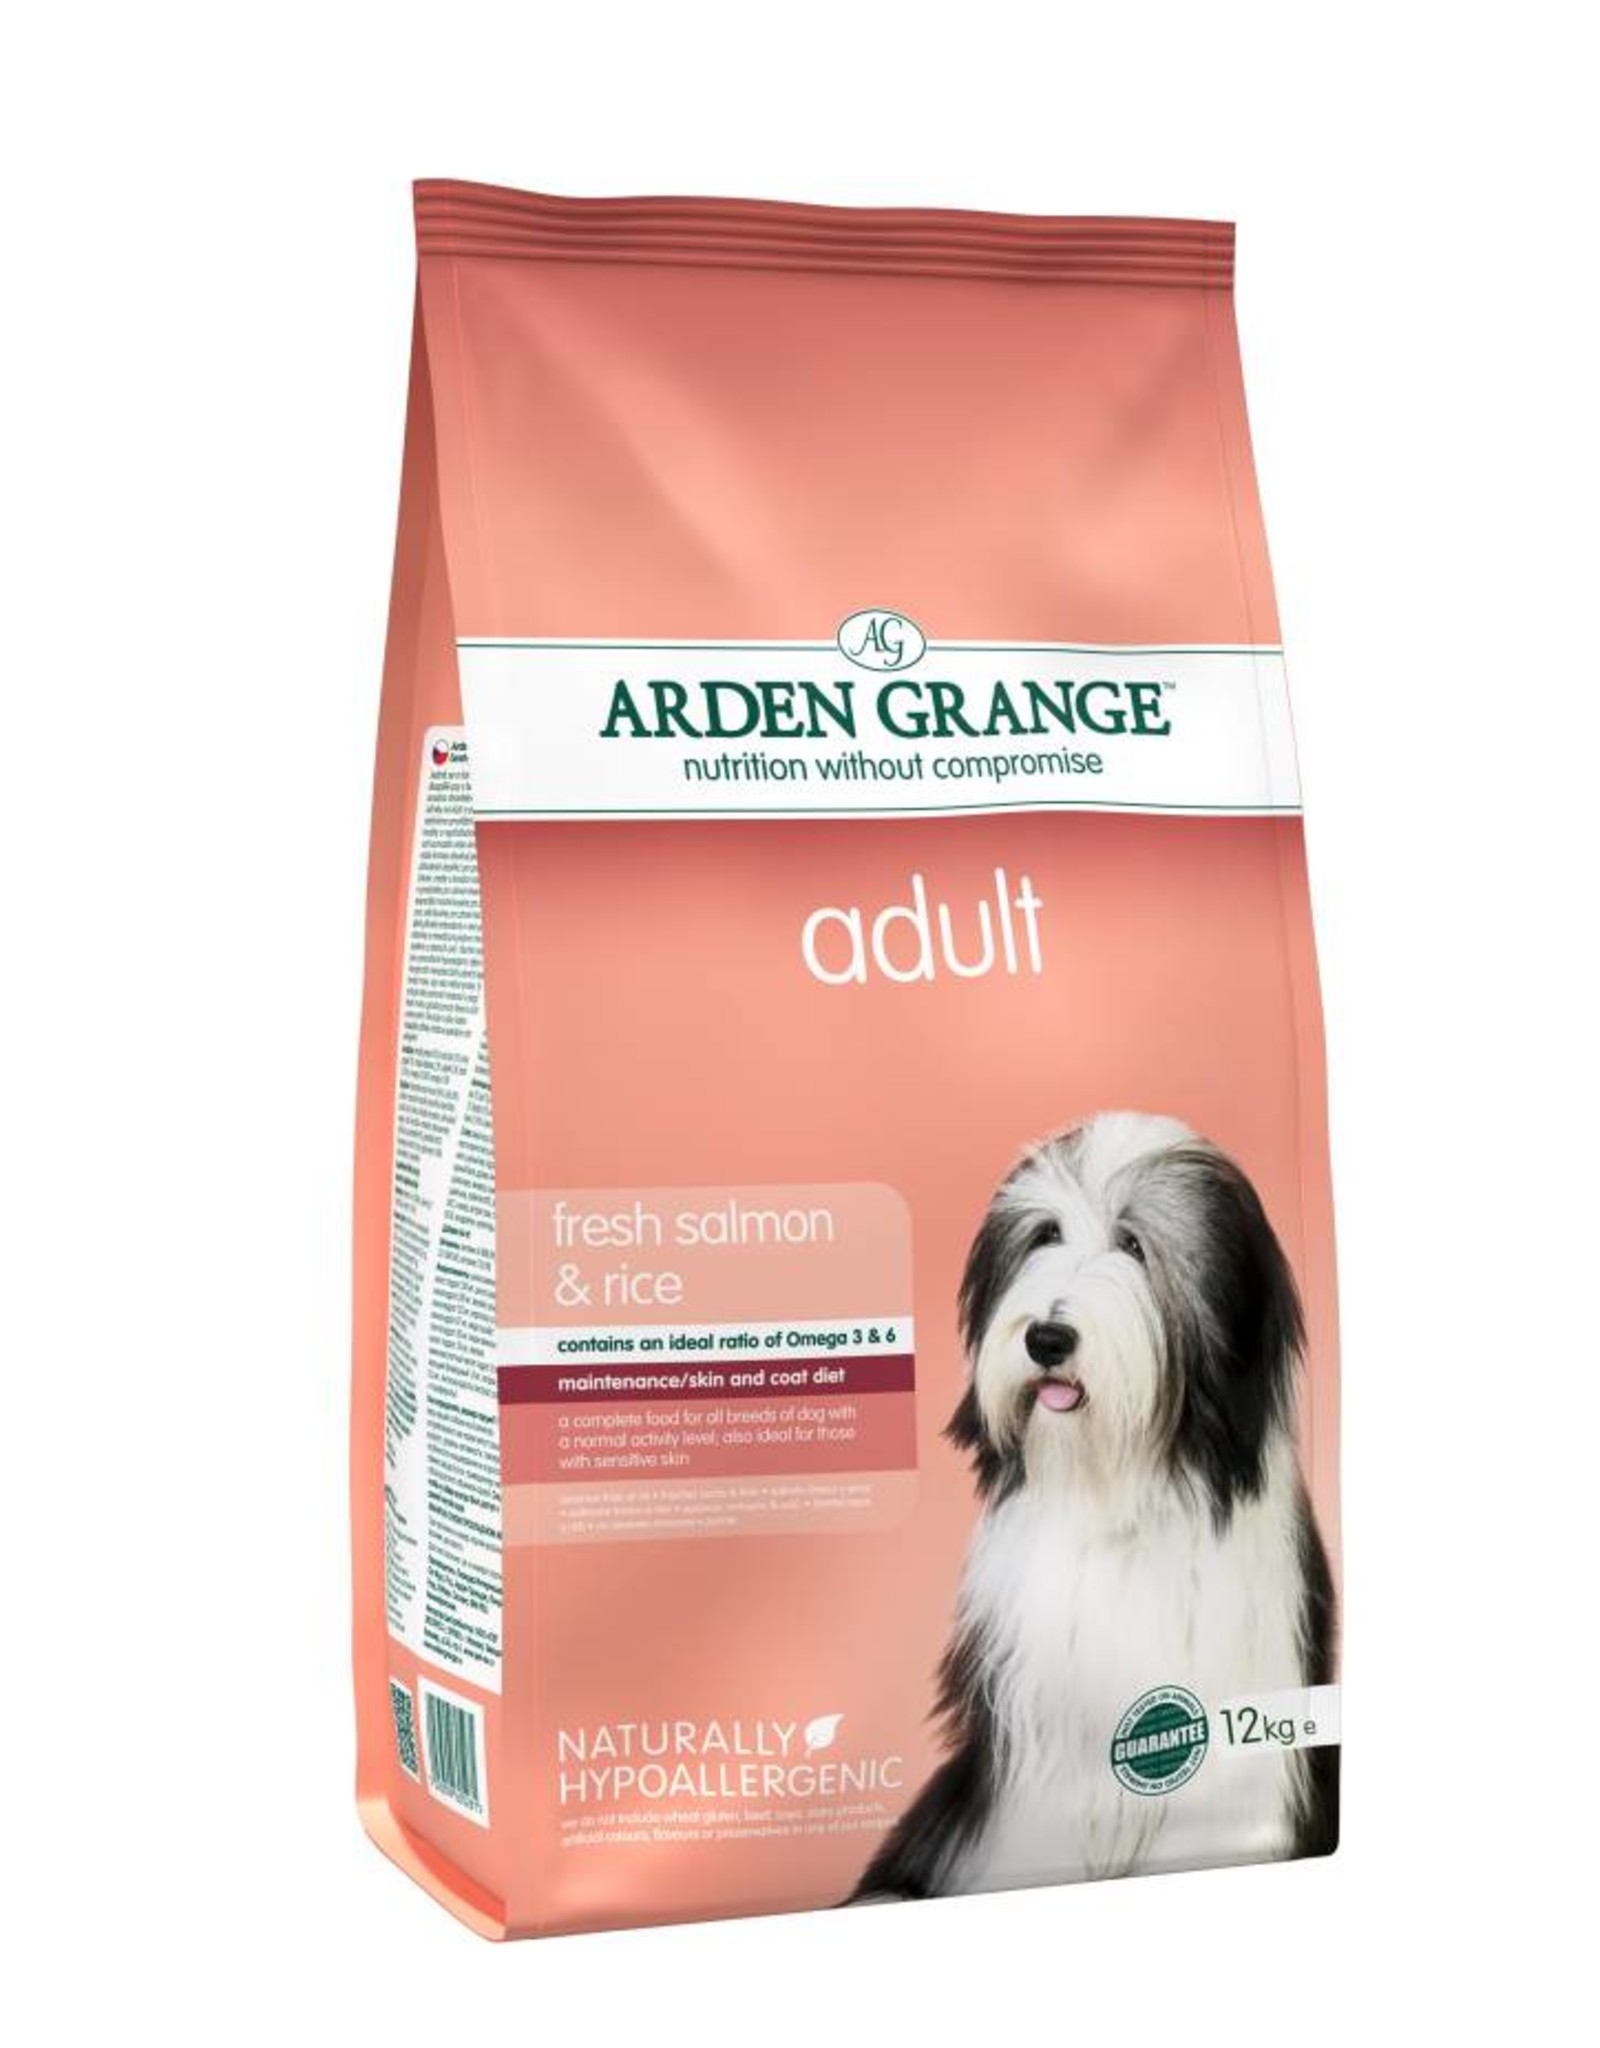 Arden Grange Adult Dog Dry Food, Salmon & Rice